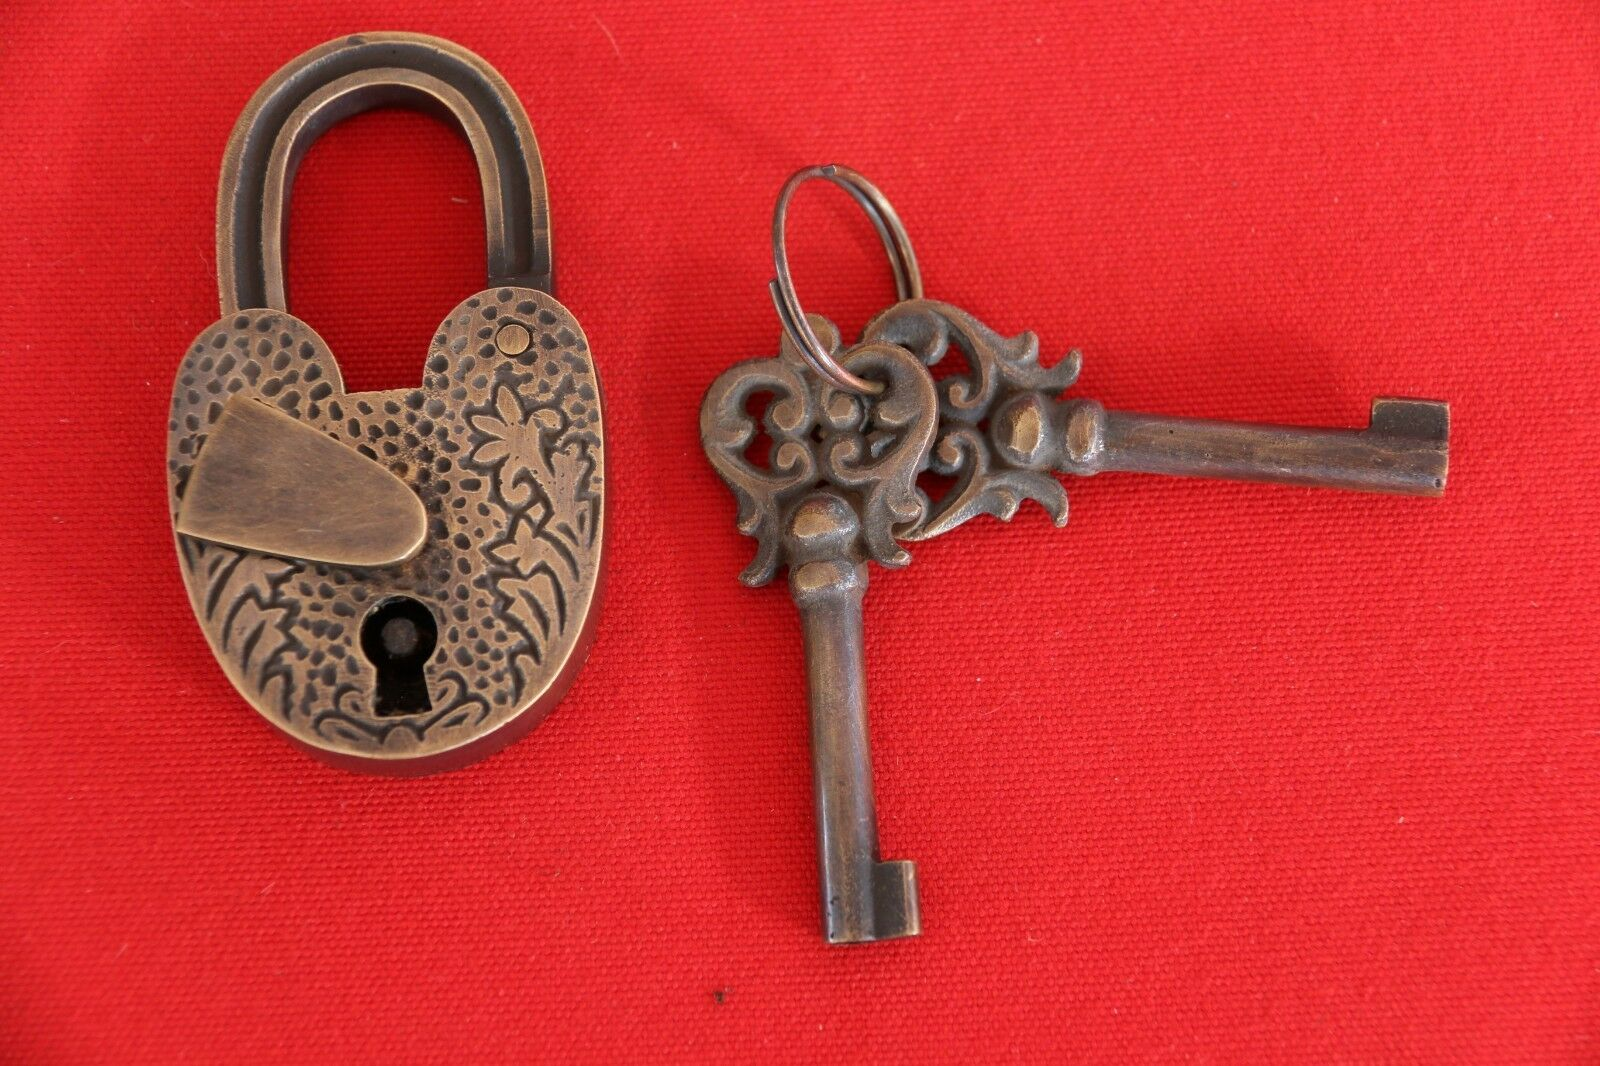 New BRASS Ornate Antique Style Padlock + 2 Decorative Key - Furniture Accessorie